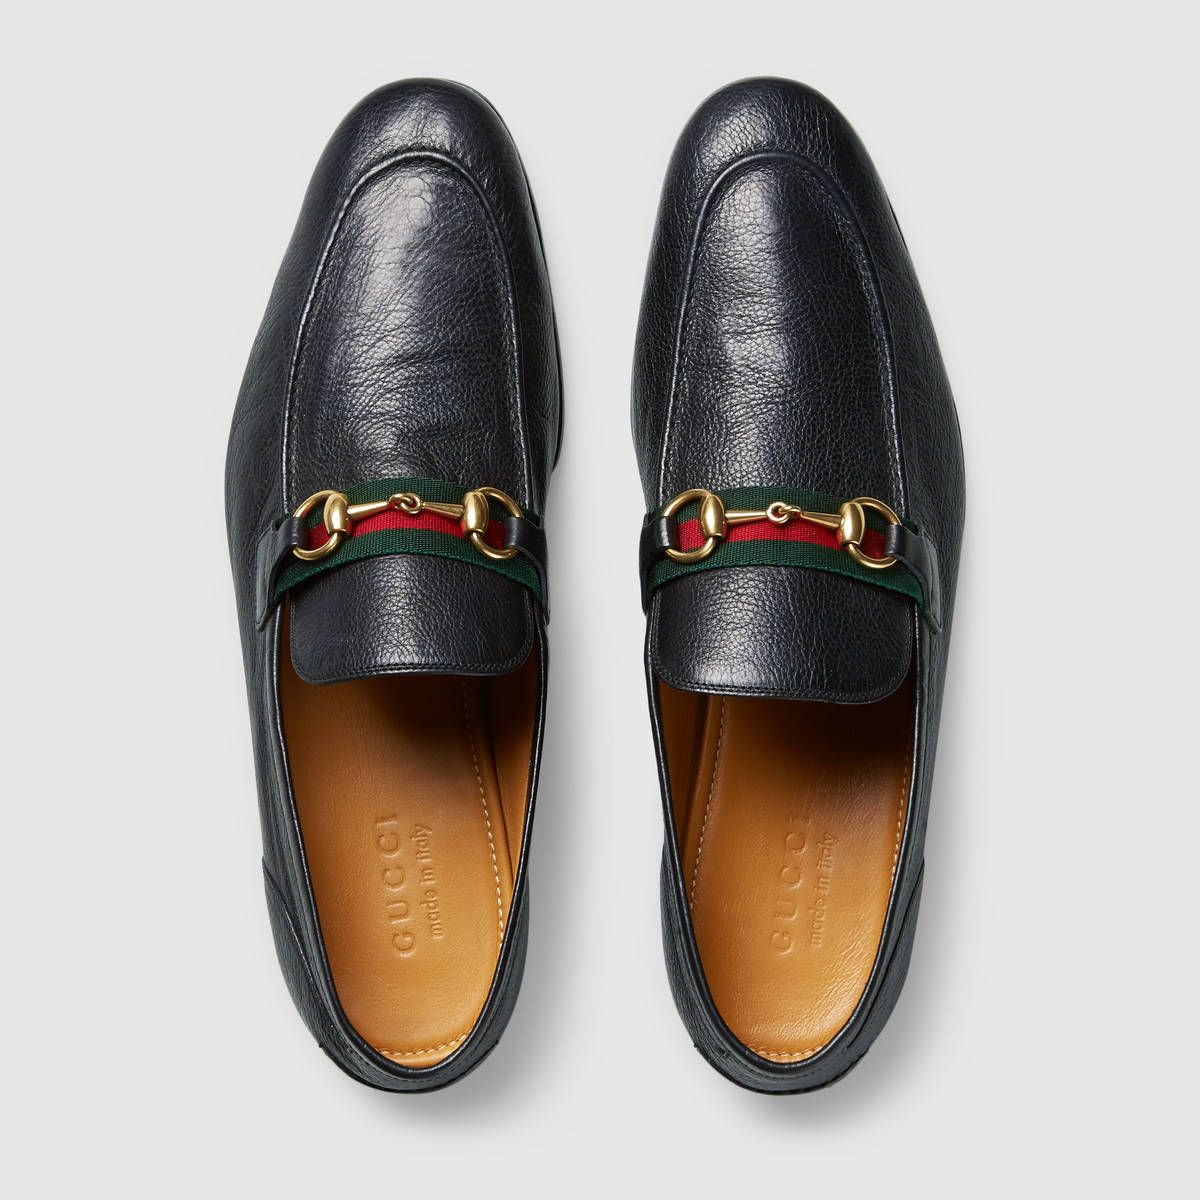 1d6d5fb5c Gucci Horsebit leather loafer with Web Detail 3 | Gucci in 2019 ...